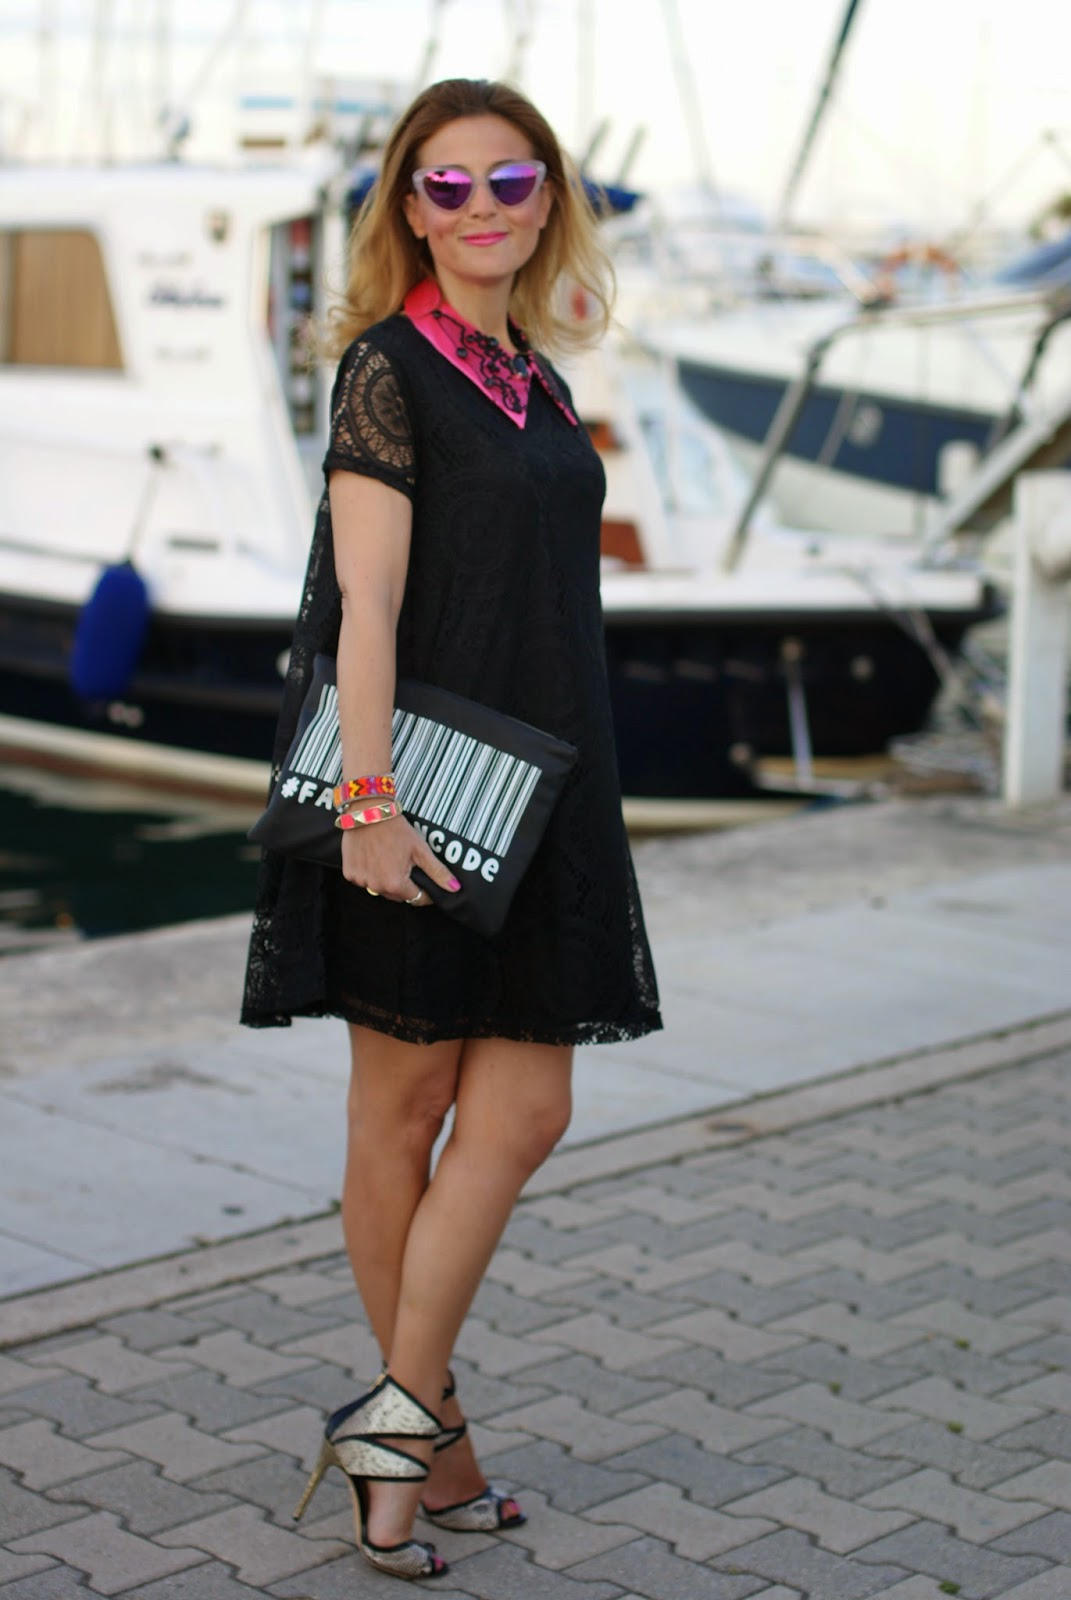 Essequadro eyewear, Fato creazioni, Blackfive lace dress, Fashion and Cookies, fashion blogger